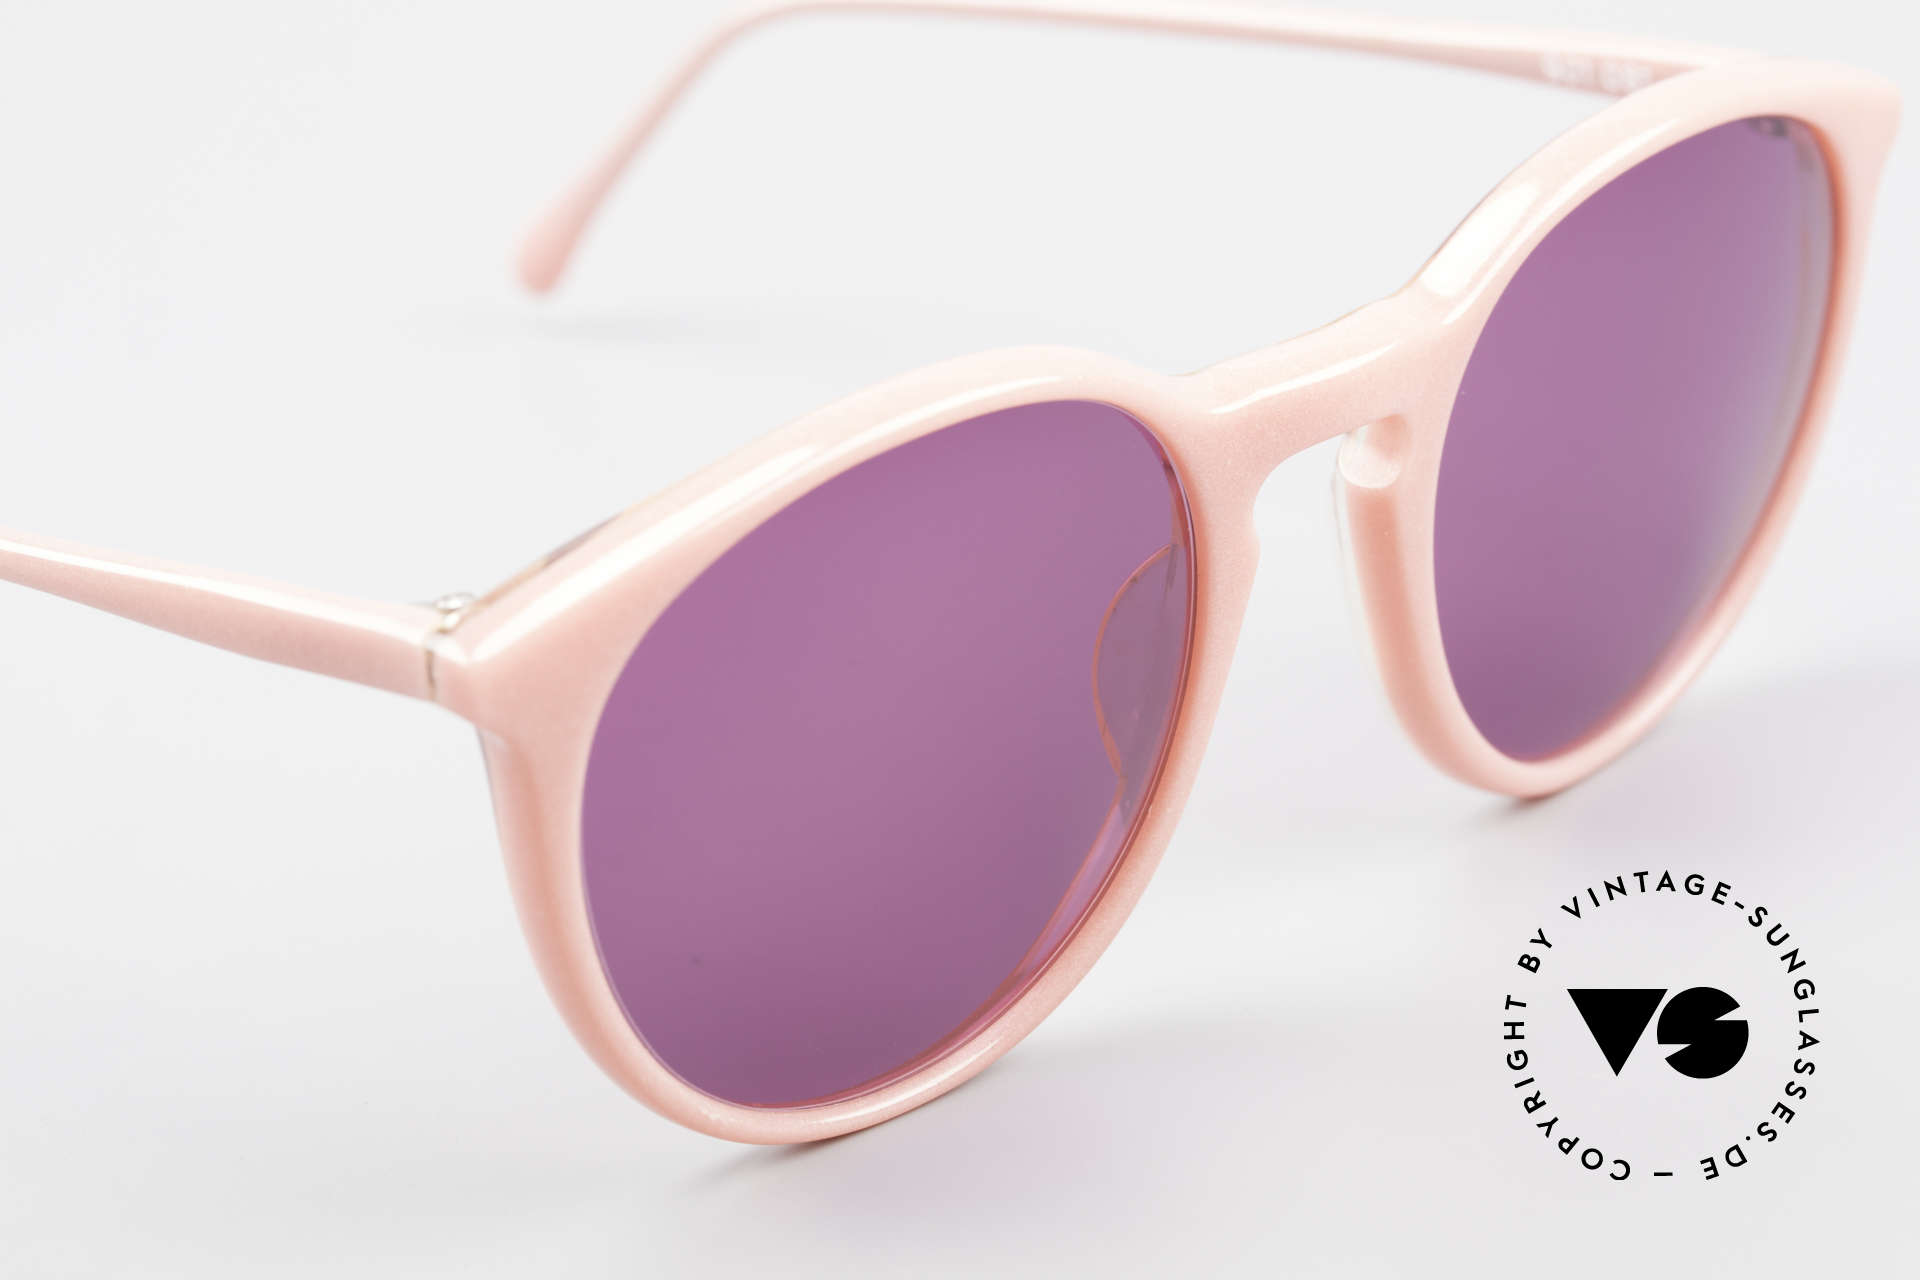 Alain Mikli 901 / 081 Panto Sunglasses Purple Pink, never worn (like all our vintage Alain Mikli specs), Made for Women